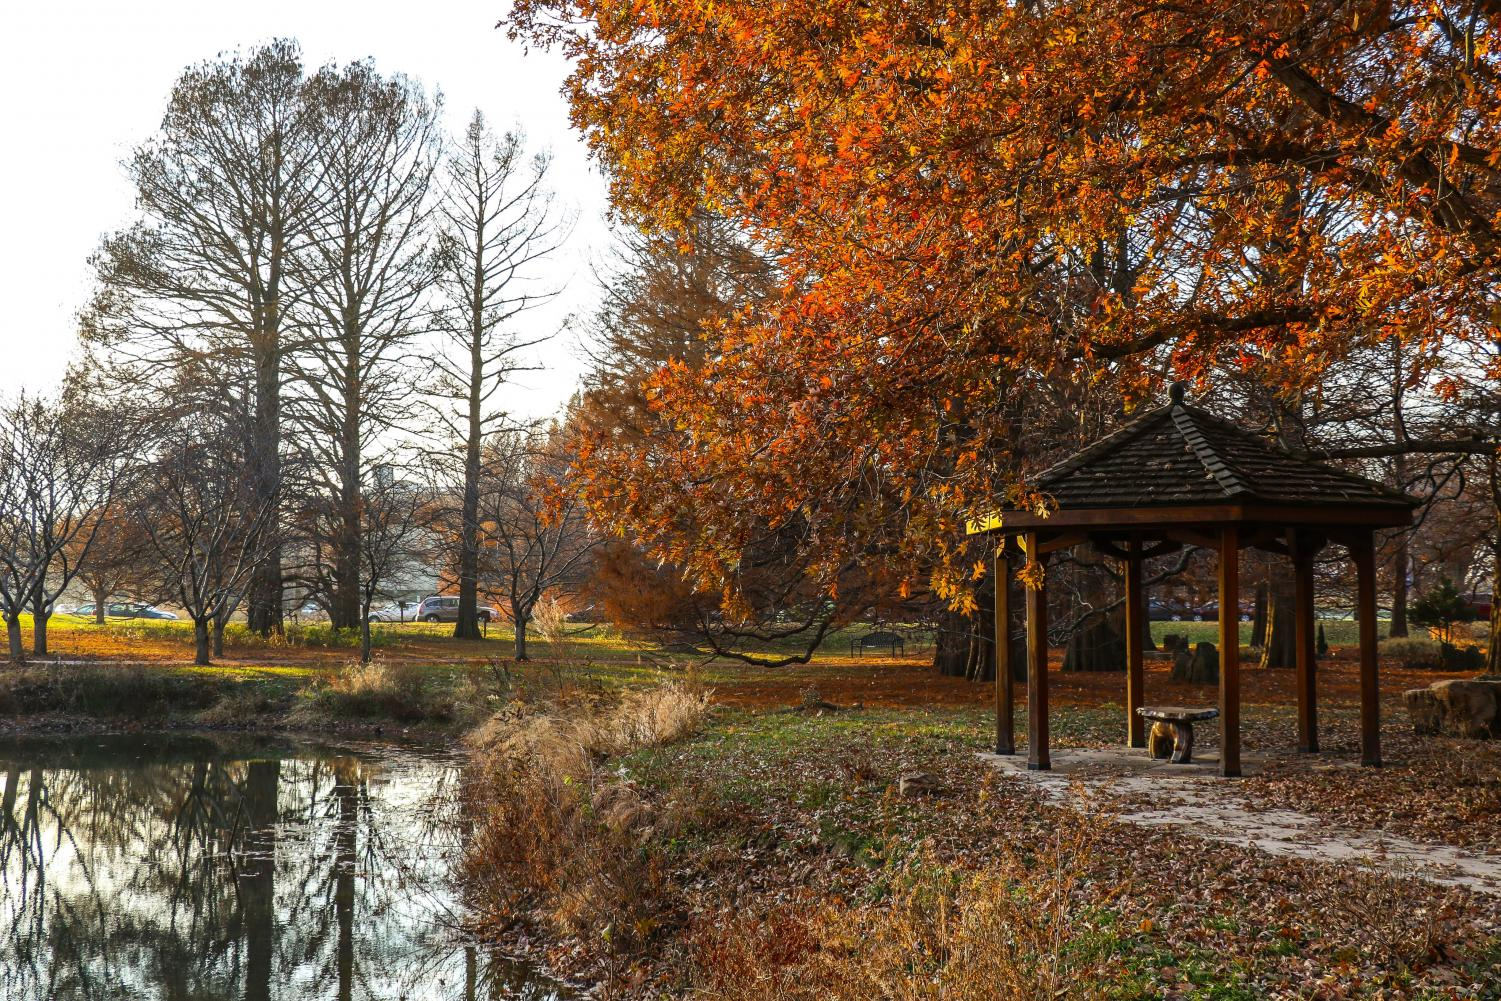 Arboretum at sunset on Friday. The climate change report, co-authored by University researchers, is encouraging local efforts to battle the effects of climate change. The report warns on the dangers of climate change.